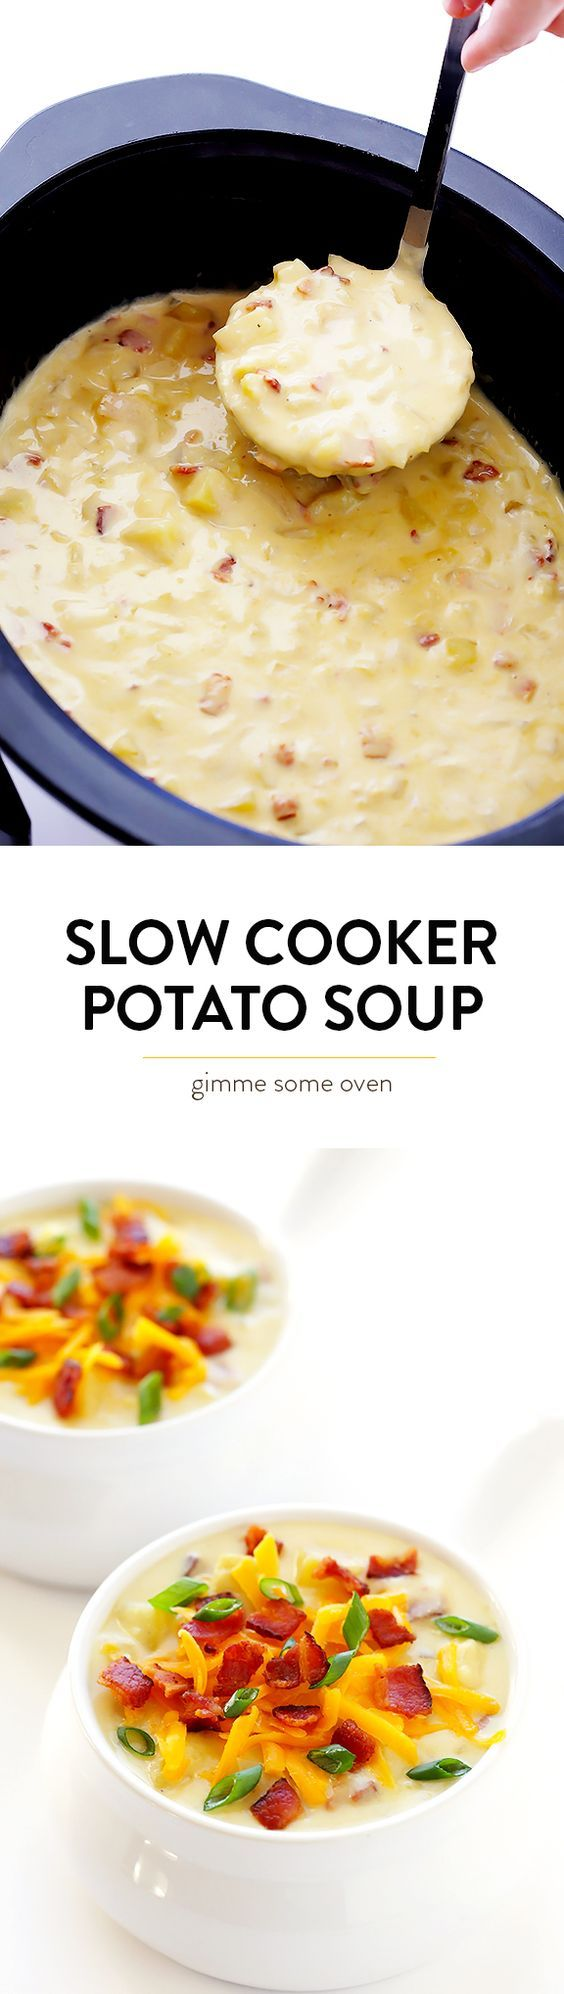 This Slow Cooker Potato Soup recipe is thick and creamy (without using heavy cream), it's wonderfully flavorful, and it's made extra easy in the crock pot! | gimmesomeoven.com: